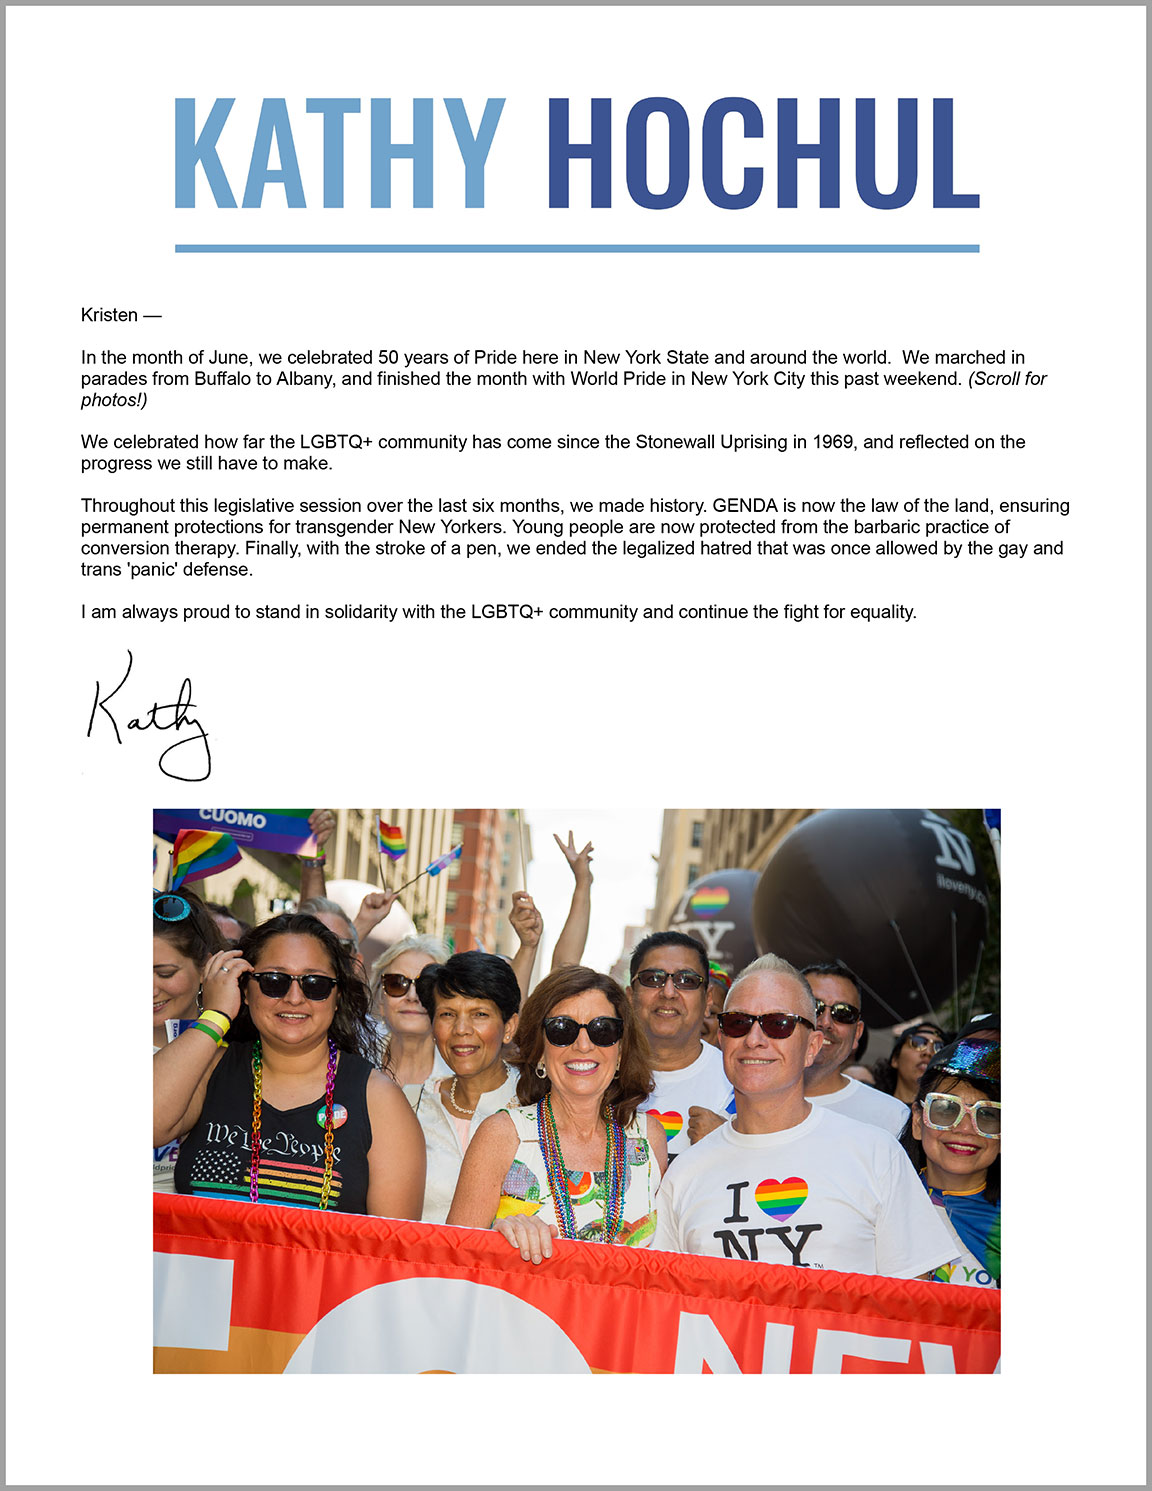 Photographs by Kristen Blush are featured in Kathy Hochul's Pride Newsletter paid for by Friends For Kathy Hochul.